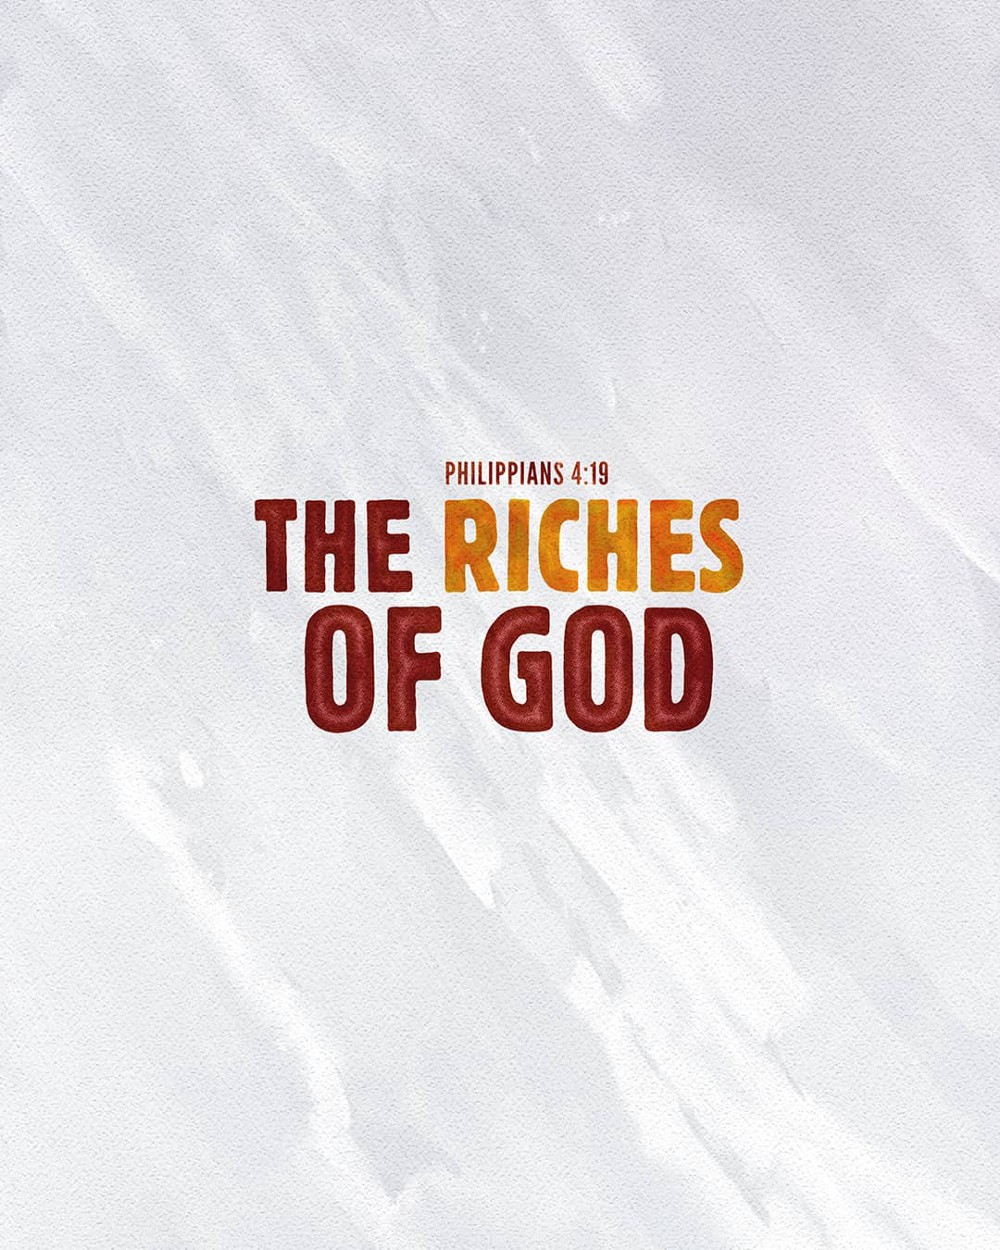 The riches of God | Small Voice Today